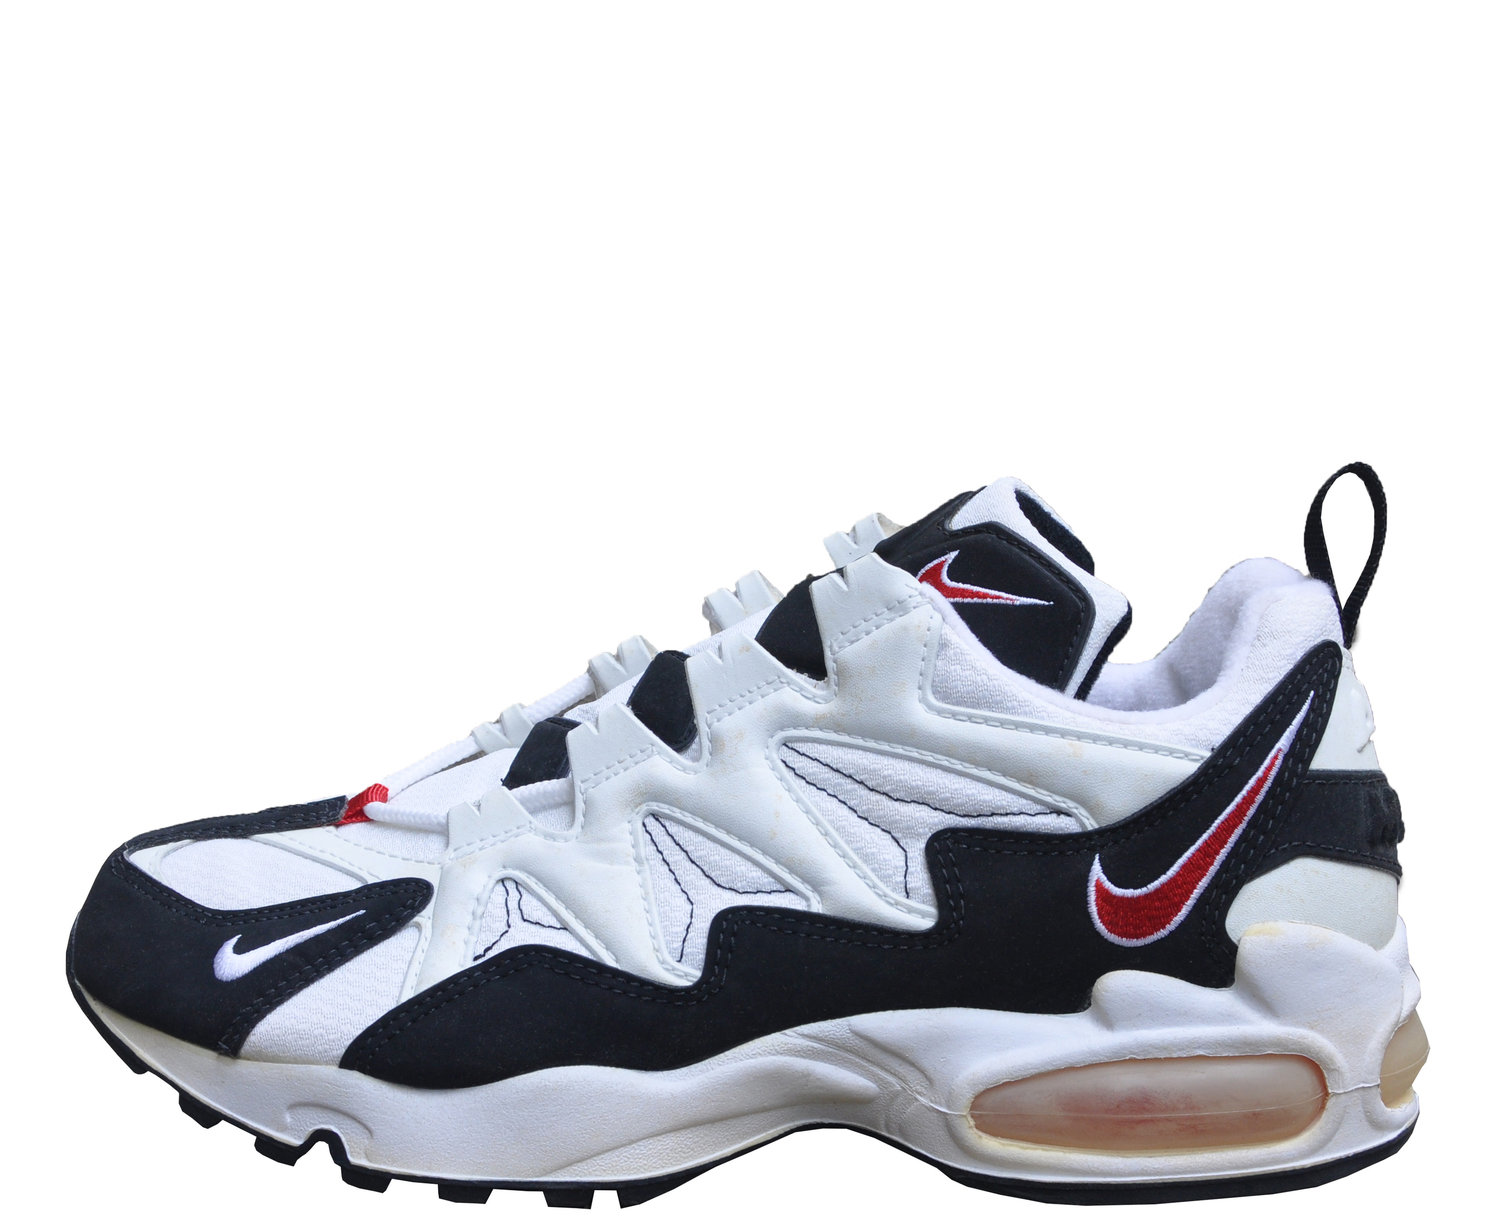 newest collection 2df5a 6a1f2 Nike Air Max Tailwind 1996 White   Black   Red (Size 9.5) DS — Roots